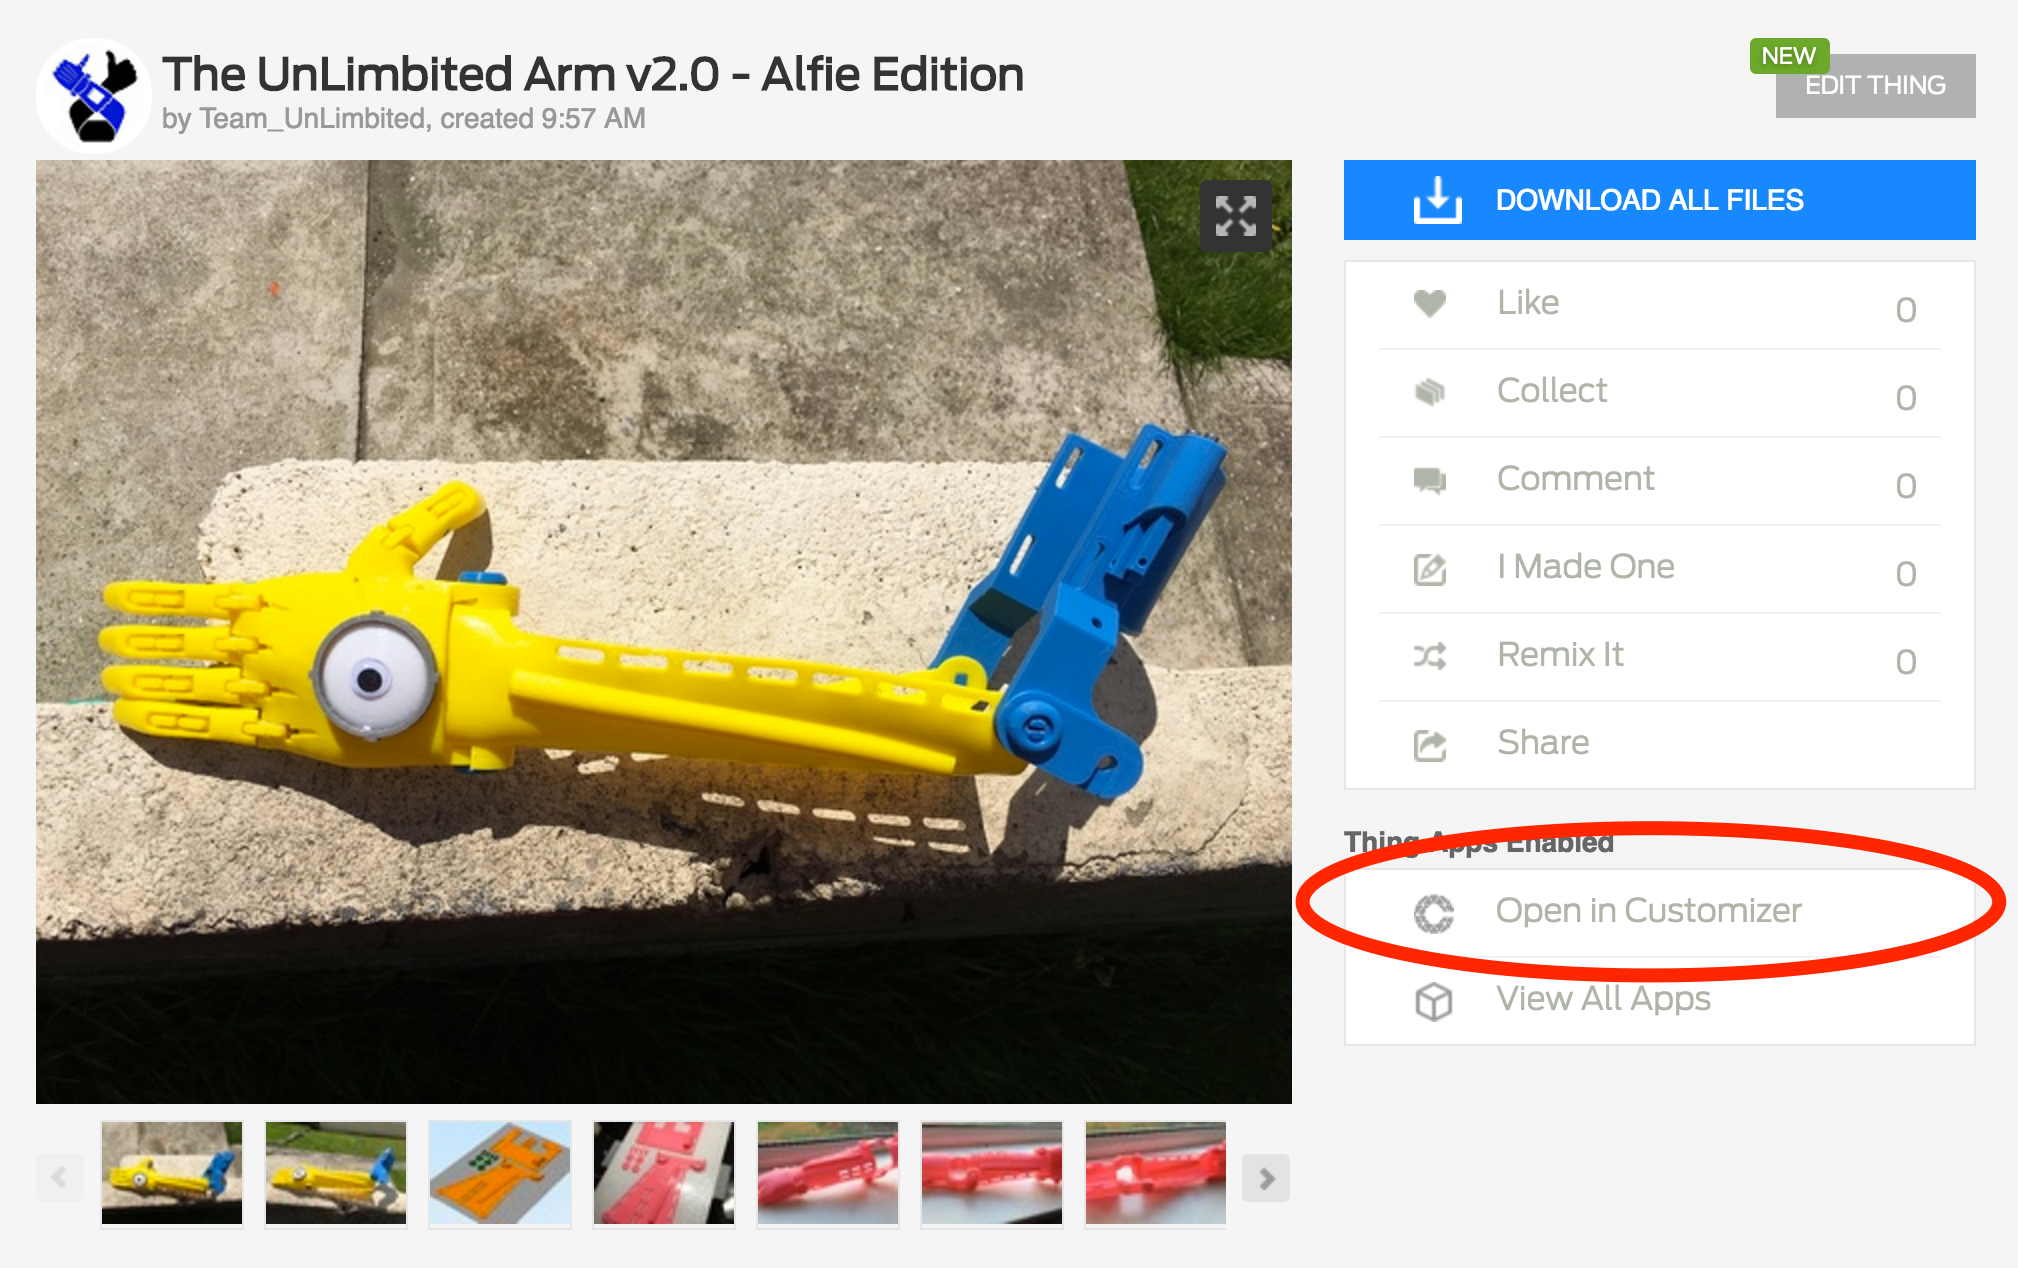 The_UnLimbited_Arm_v2_0_-_Alfie_Edition_by_Team_UnLimbited_-_Thingiverse.png